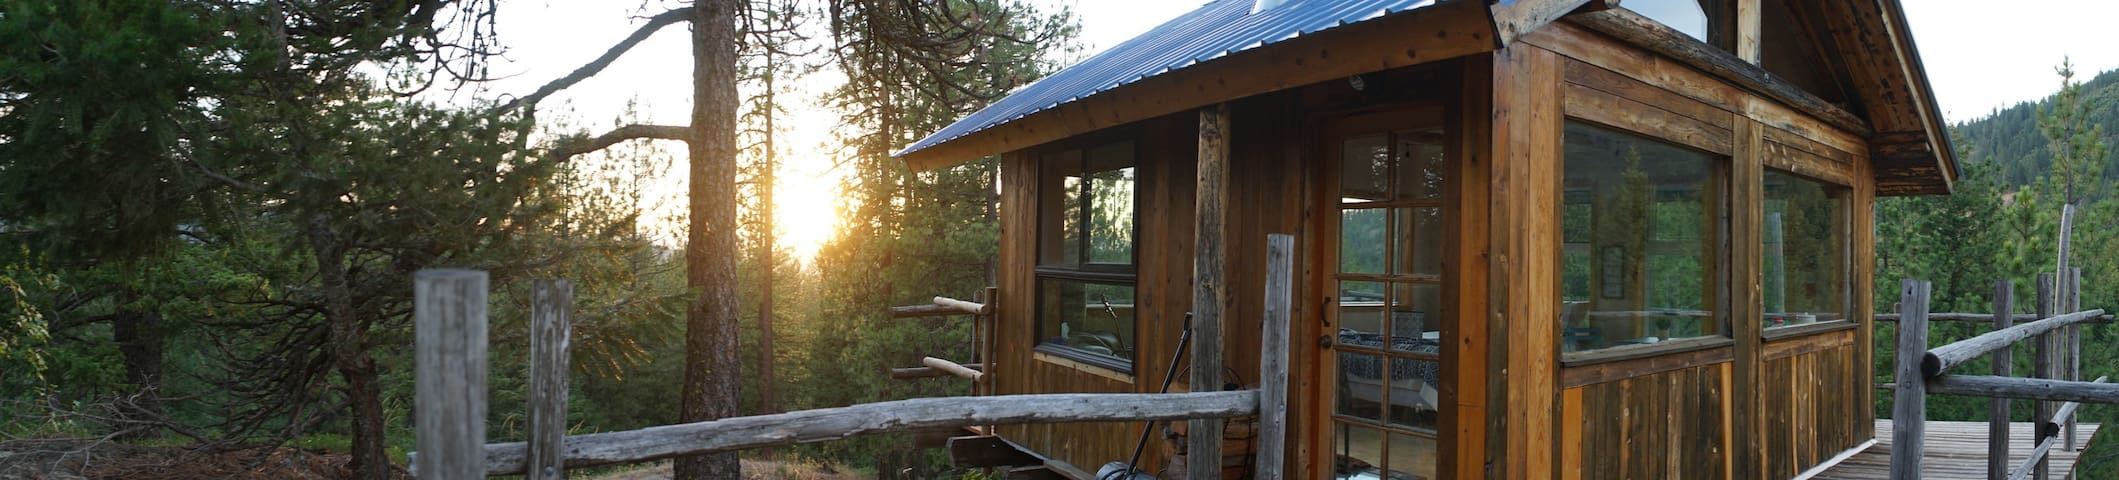 🏕Off-Grid@The Glass House|A Tiny Cabin Venture